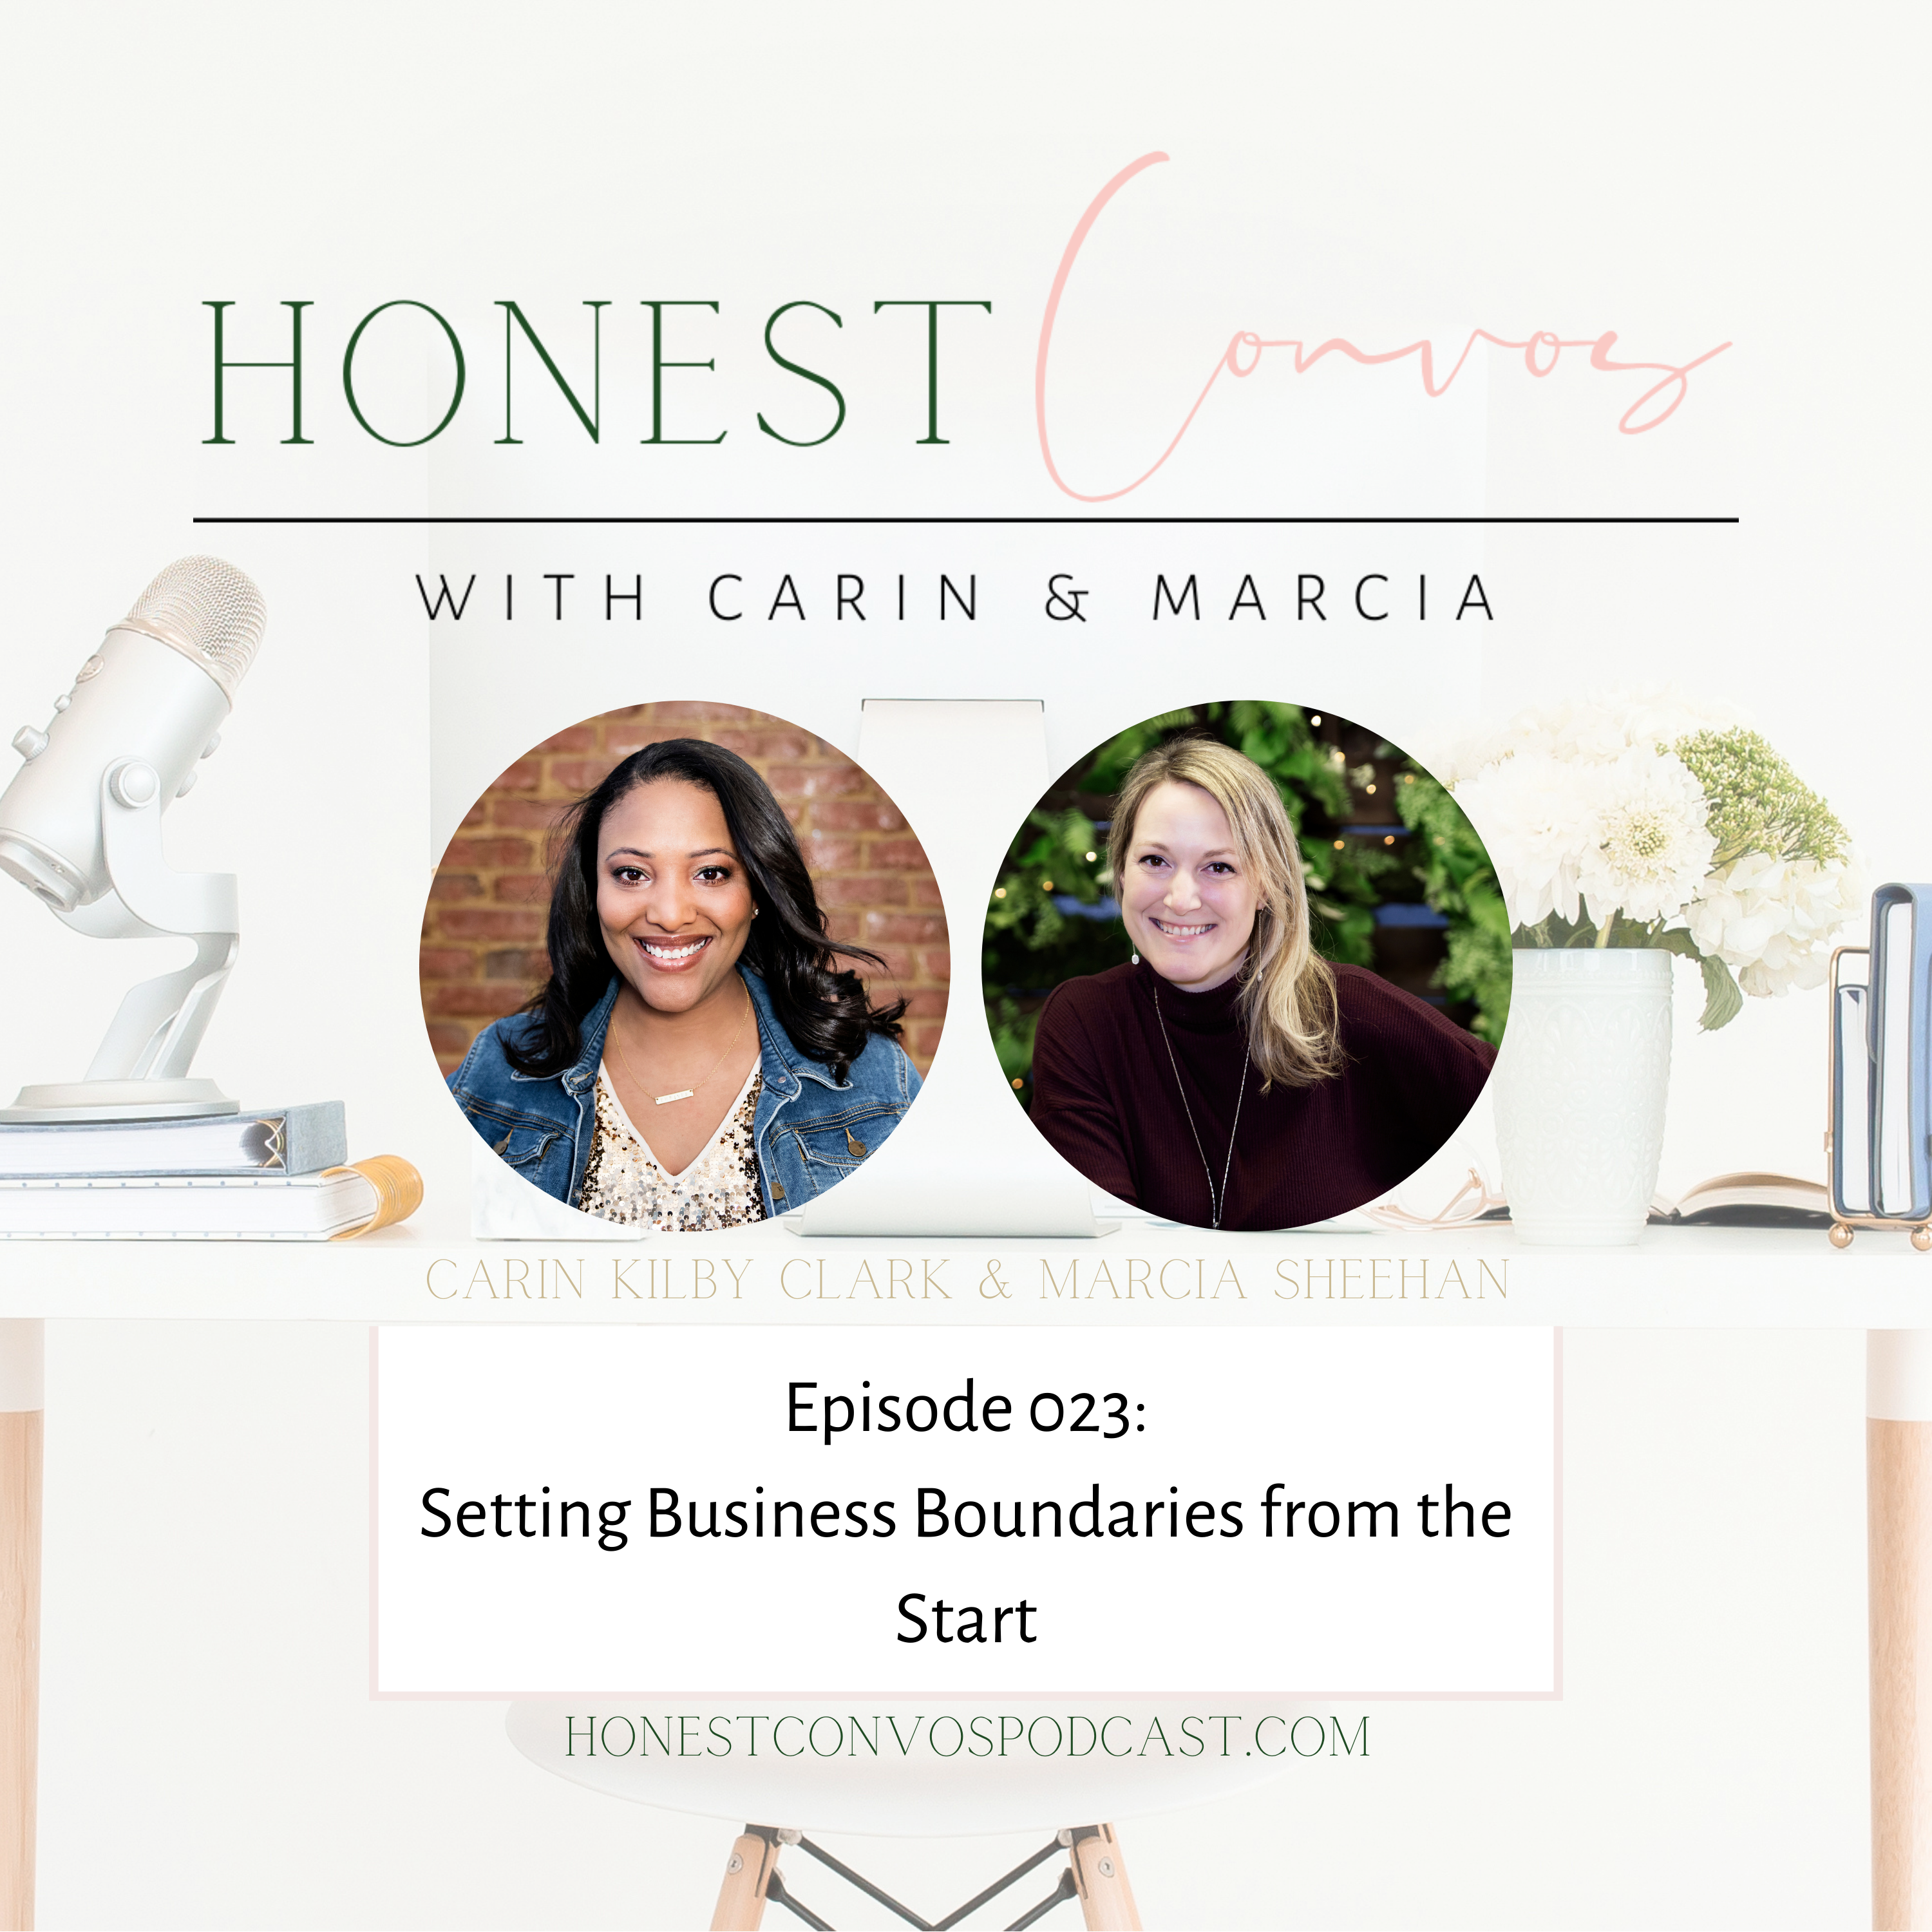 Honest Convos with Carin and Marcia - Setting Business Boundaries from the Start